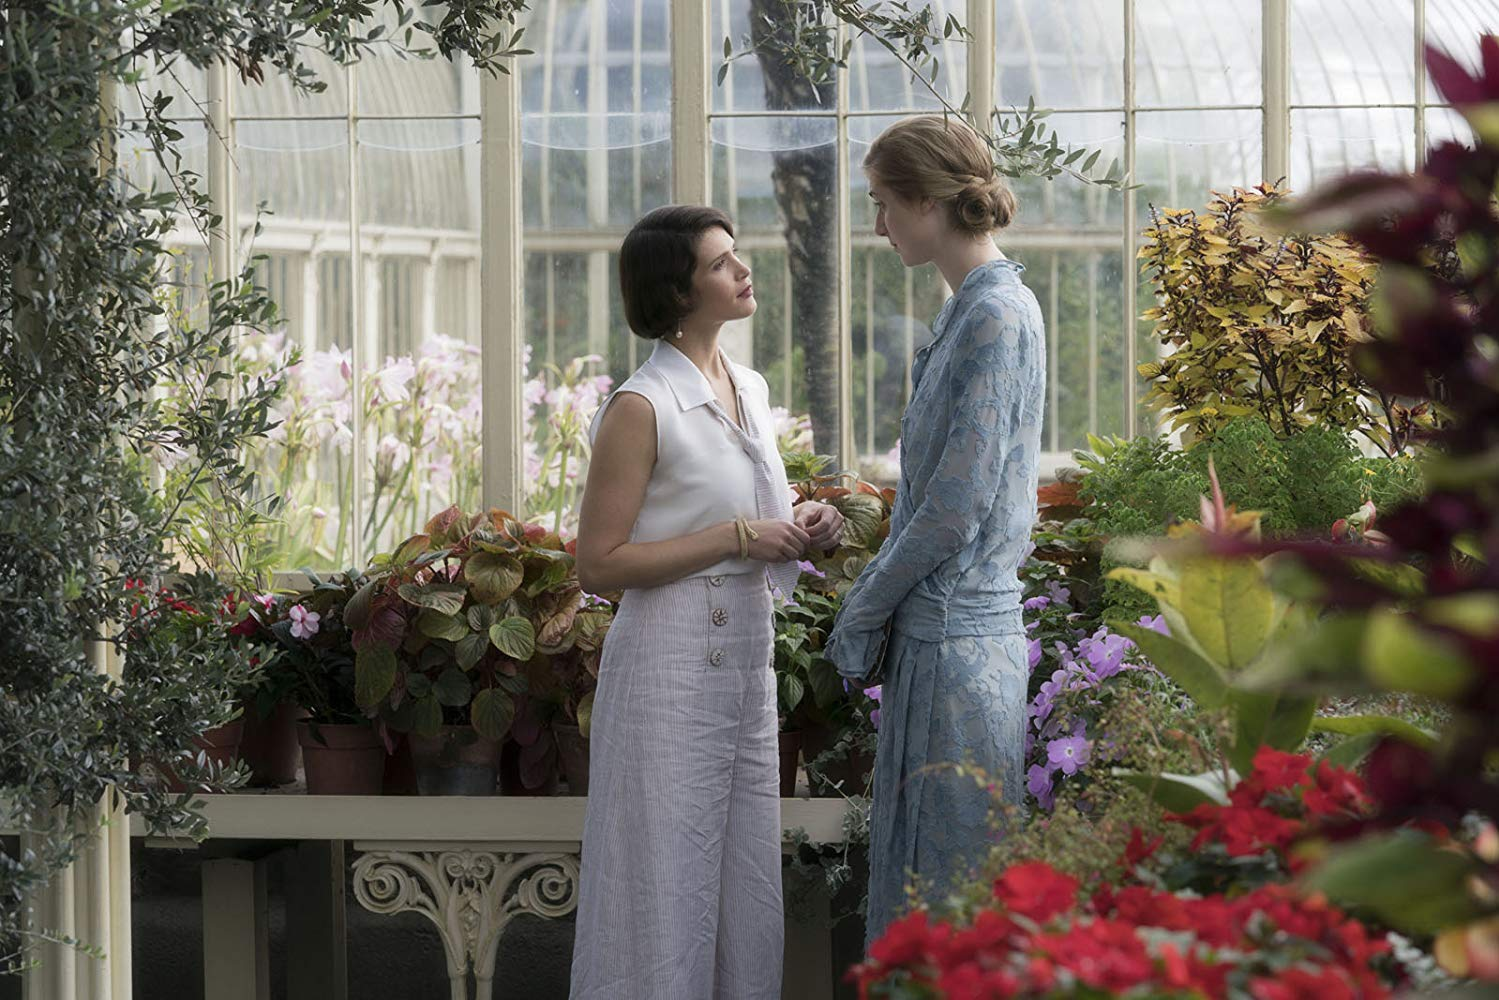 Actors playing Vita Sackville-West and Virginia Woolfe in some sort of greenhouse setting.